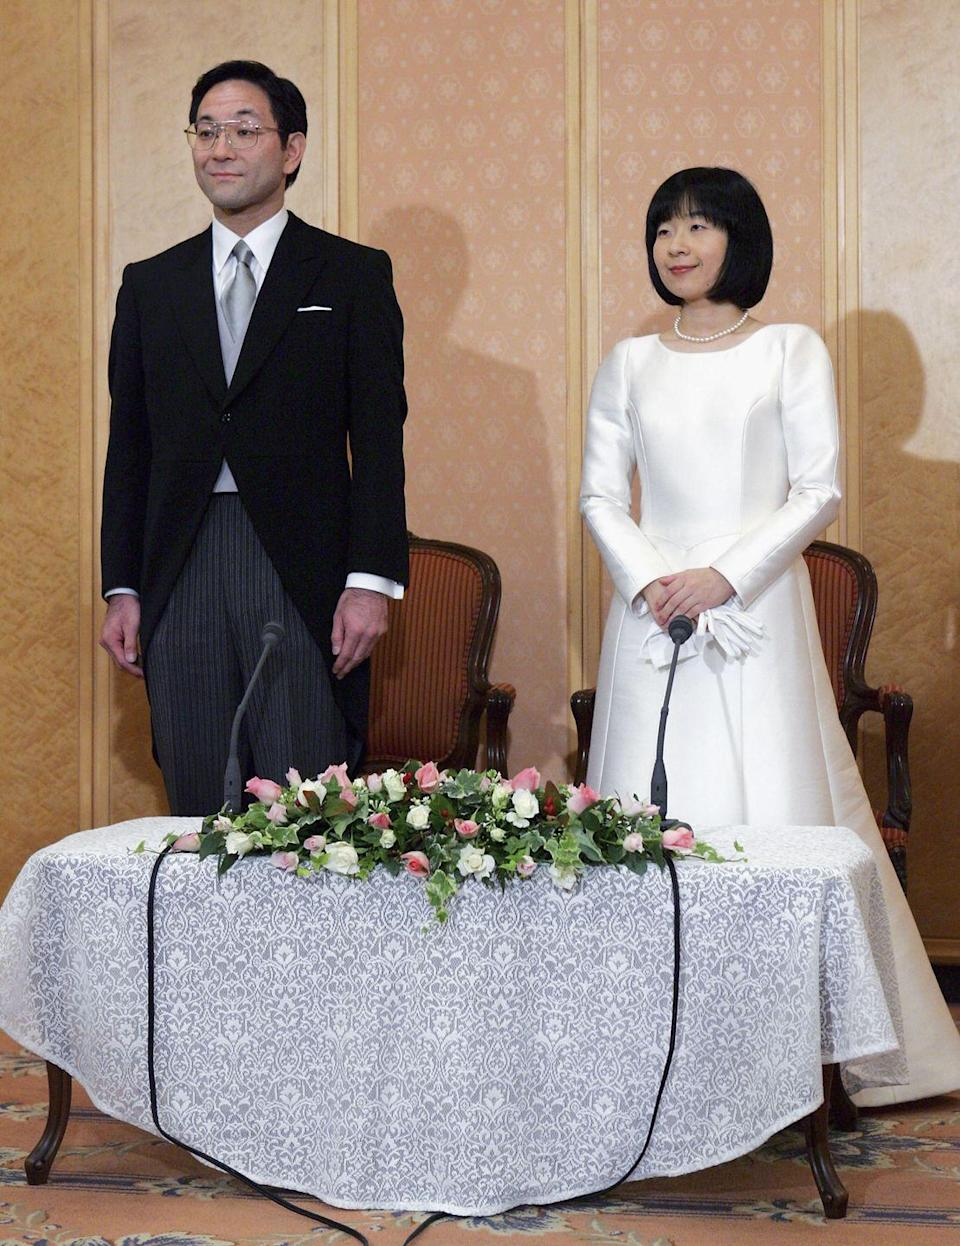 "<p>When she was 36, Princess Nori of Japan left the hereditary monarchy behind when she married a commoner, businessman Yoshiki Kuroda. Per <a href=""https://www.independent.co.uk/news/world/asia/princess-nori-of-japan-begins-new-life-as-plain-mrs-kuroda-515521.html"" rel=""nofollow noopener"" target=""_blank"" data-ylk=""slk:The Independent"" class=""link rapid-noclick-resp""><em>The Independent</em></a>, ""Emperor Akihito's only daughter took with her a chest of drawers and a table from Tokyo's Imperial Palace, and a £700,000 one-off state payment to help smooth the passage to her new life."" Meanwhile, <em><a href=""https://www.telegraph.co.uk/news/worldnews/asia/japan/1476692/Japanese-princess-to-marry-the-best-friend-of-her-brother.html"" rel=""nofollow noopener"" target=""_blank"" data-ylk=""slk:The Telegraph"" class=""link rapid-noclick-resp"">The Telegraph</a></em> reported, ""One possible reason for Princess Sayako's late marriage is that under Japanese law she will lose her royal status on marriage and become a commoner.""</p>"